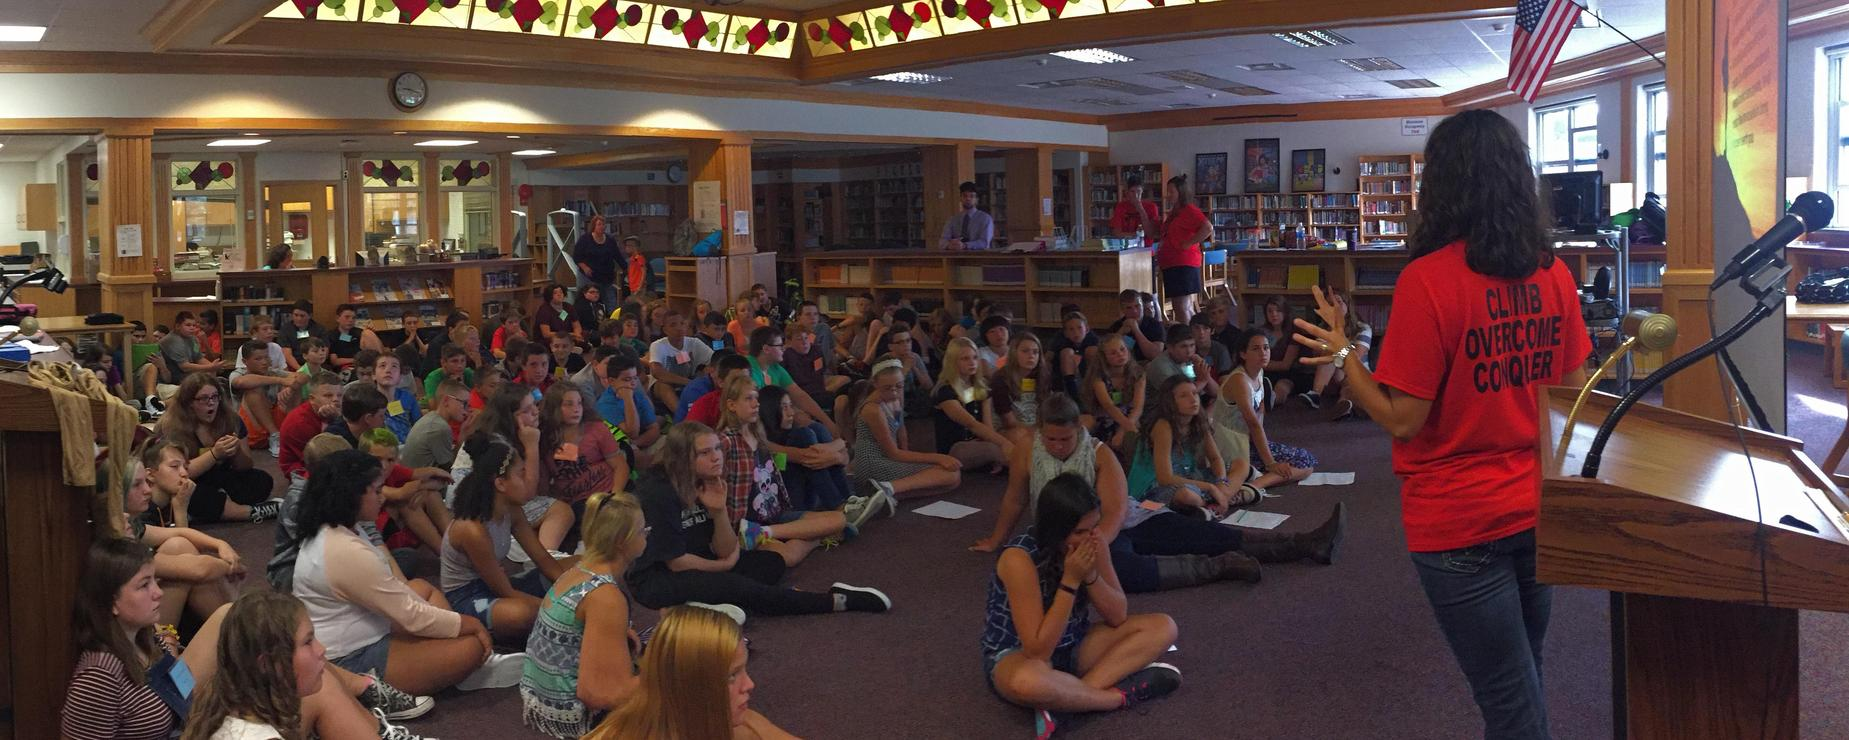 Assembly of students sitting on the library floor listening to the Club Overcome Counselor